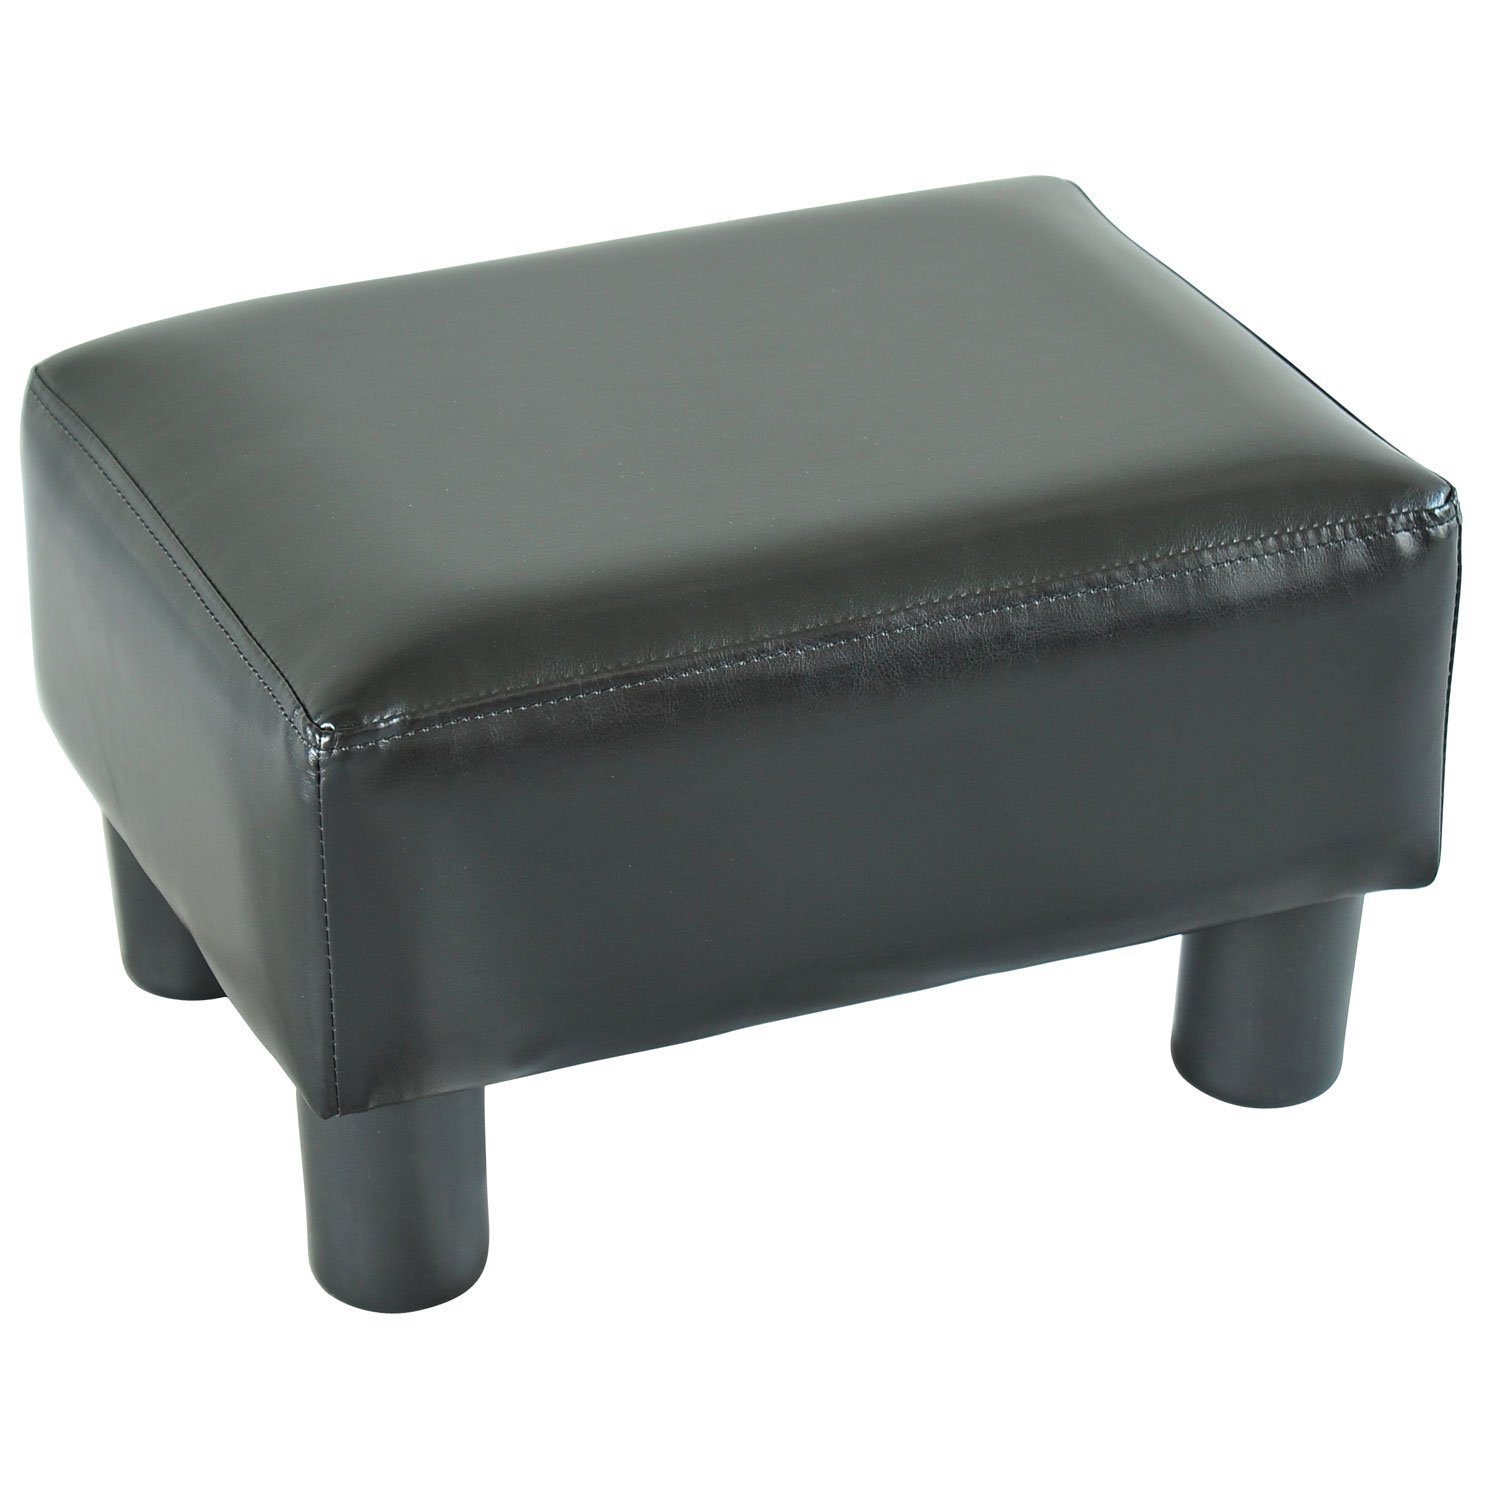 HOMCOM PU Leather Ottoman Footstool Footrest Small Seat Foot Rest Chair (Black)